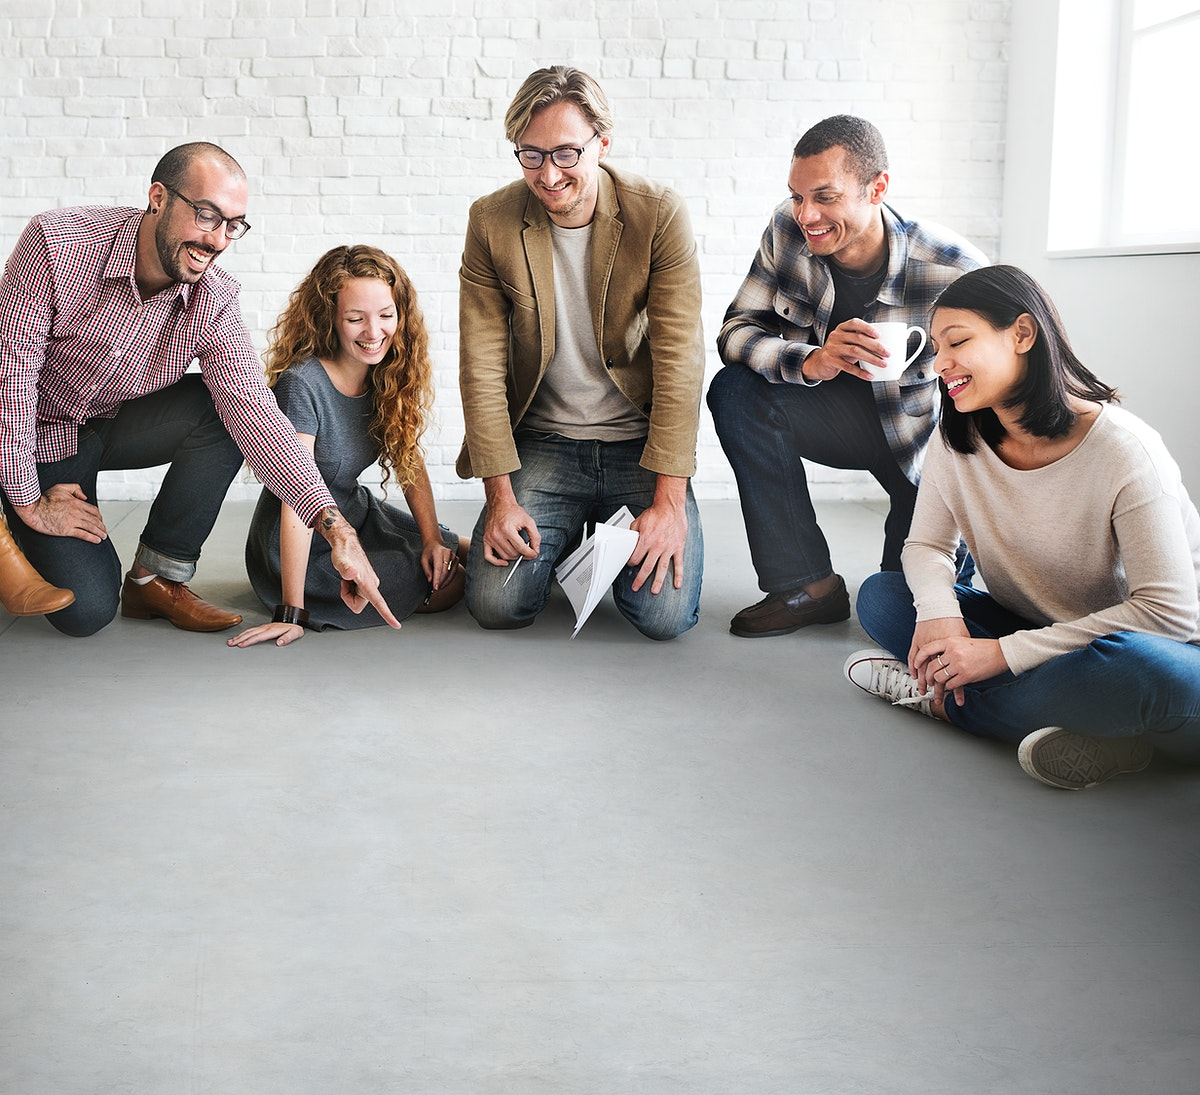 Group meeting and discussion